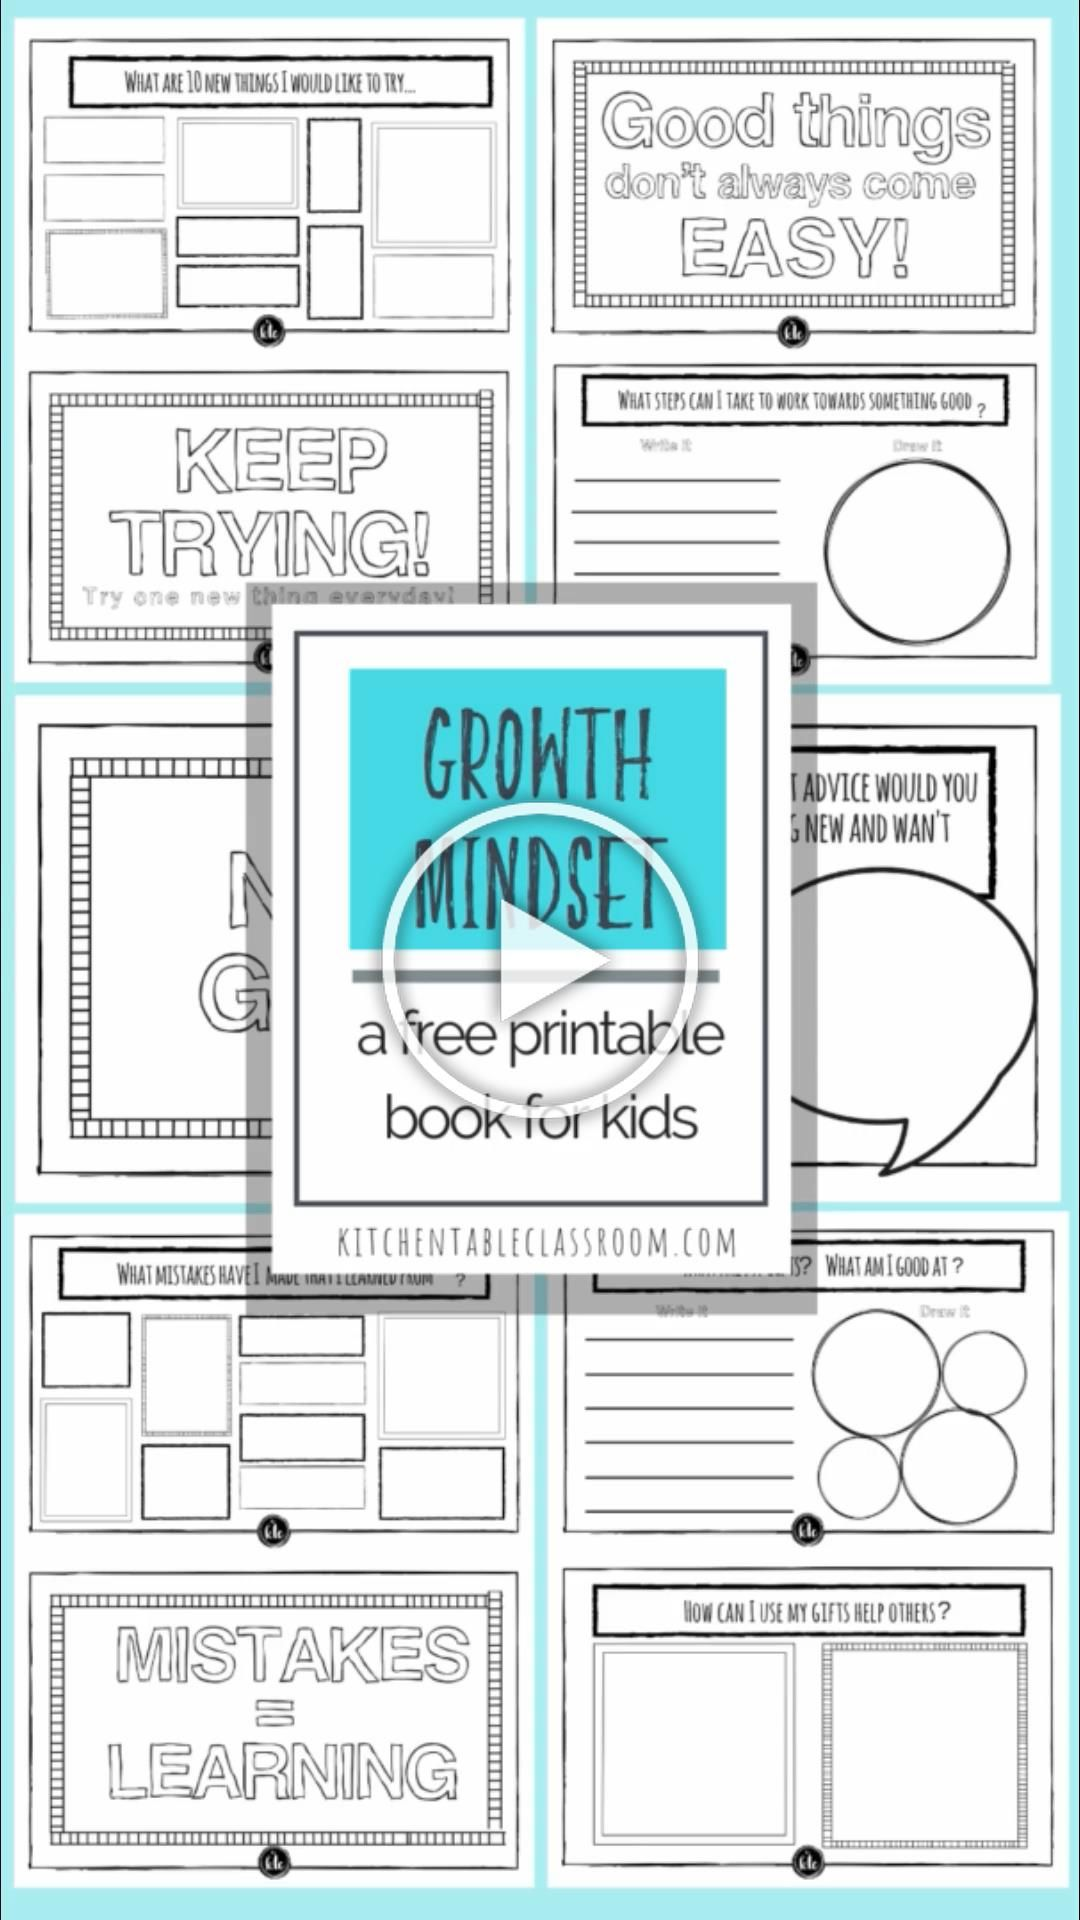 Inspire A Growth Mindset For Kids With This Free Printable